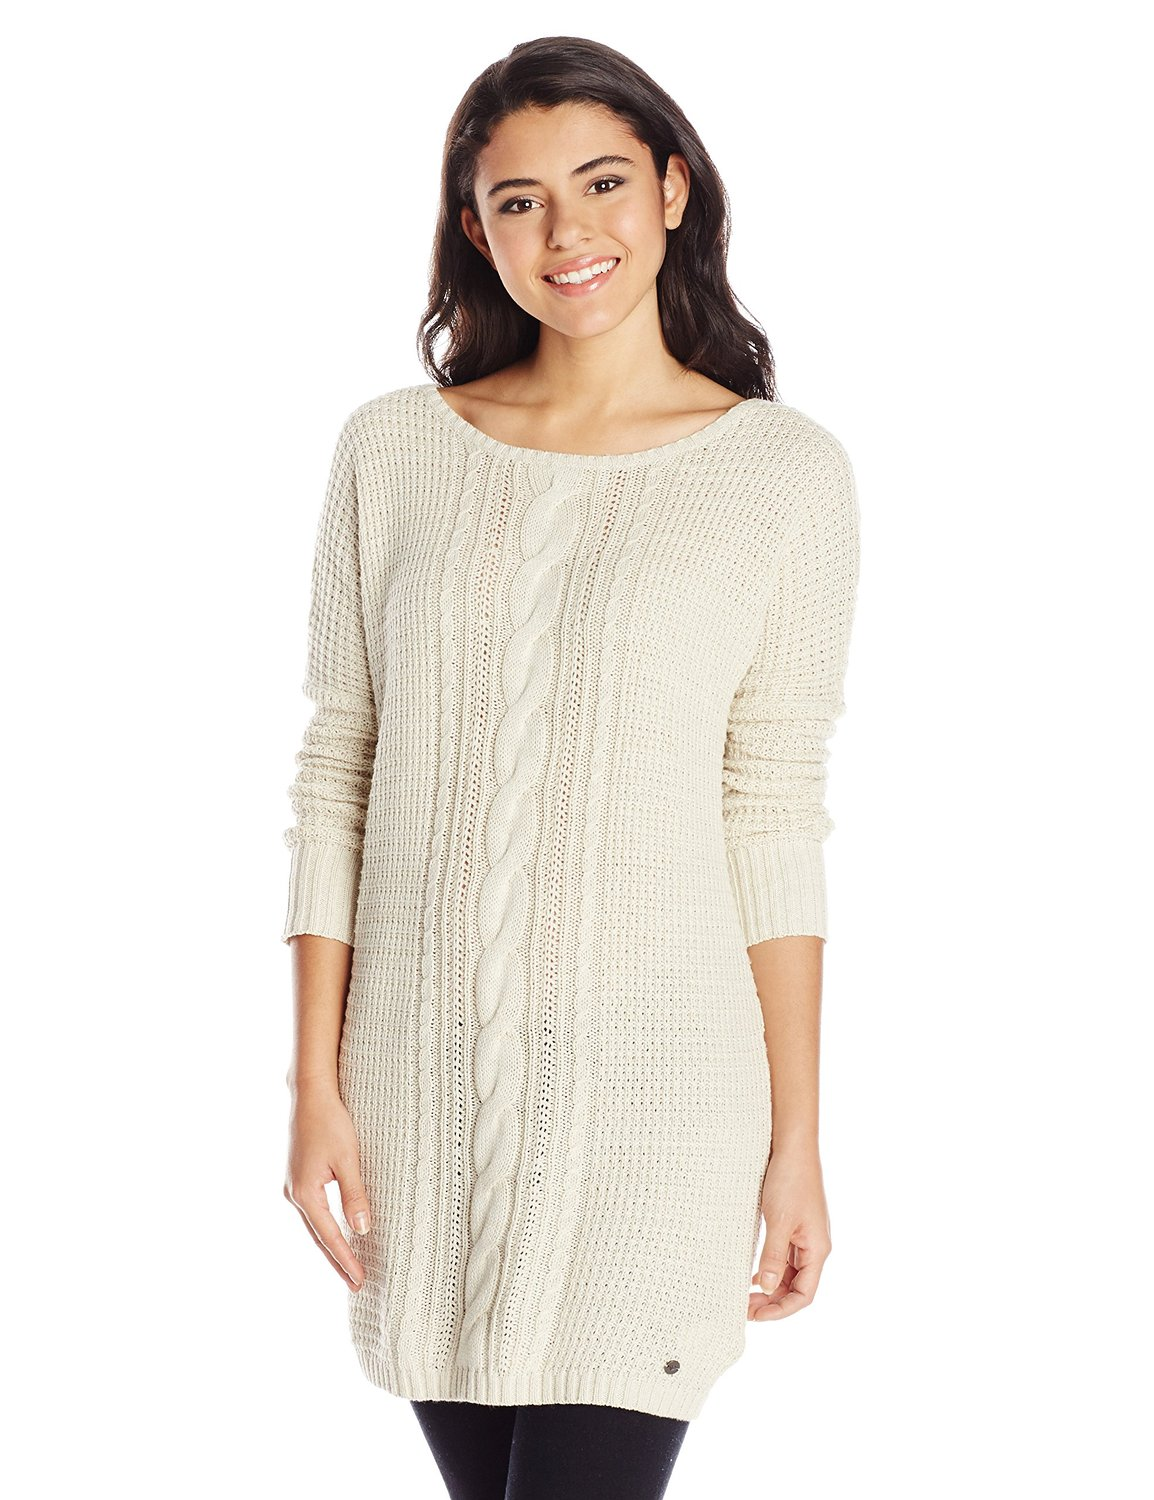 Roxy juniors shifting seas dolman sleeve cable knit sweater dress at amazon women's clothing store: